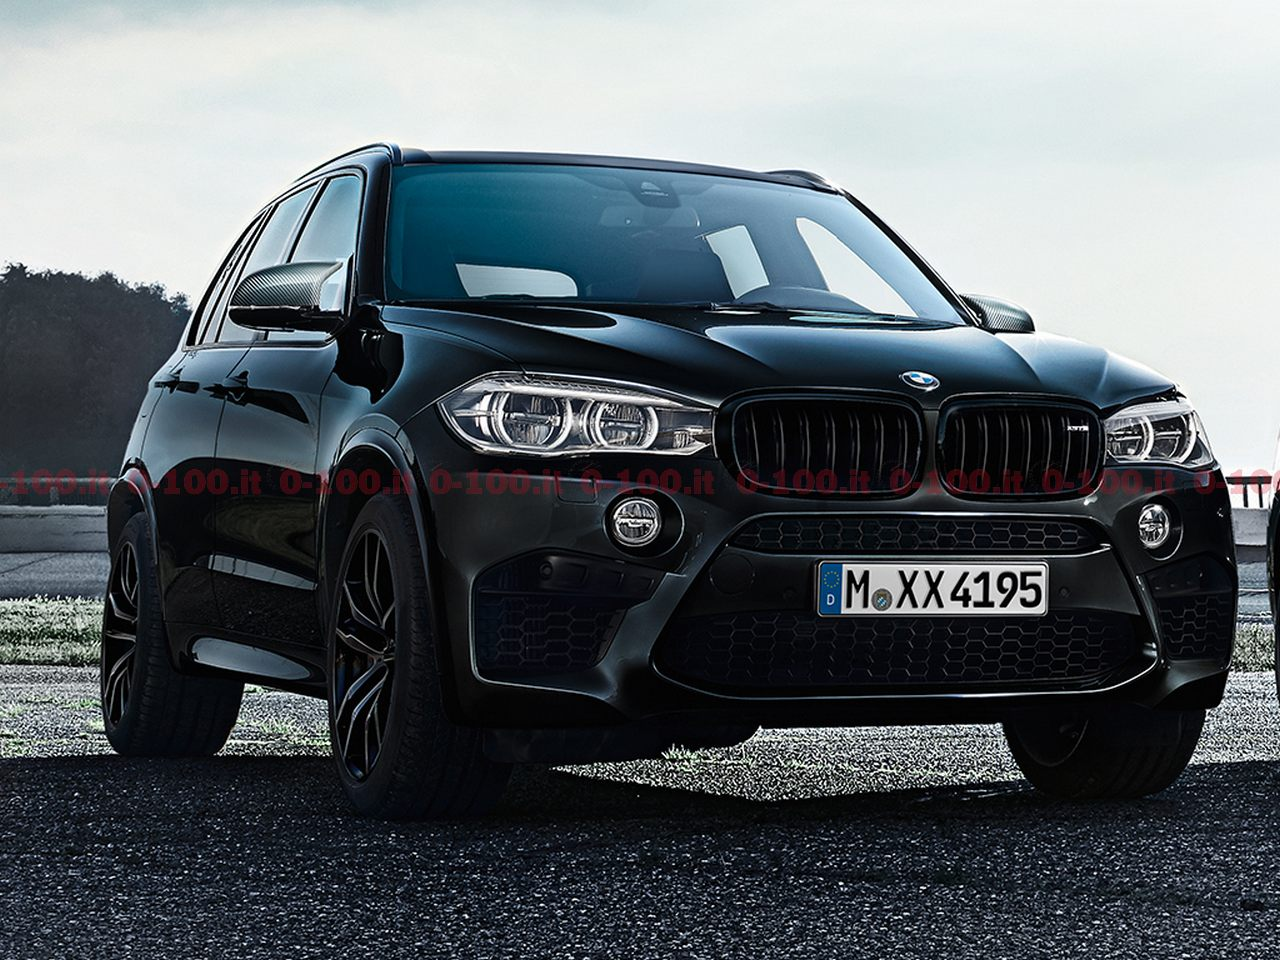 BMW_X5M-X6M-black-fire-edition_0-100_5